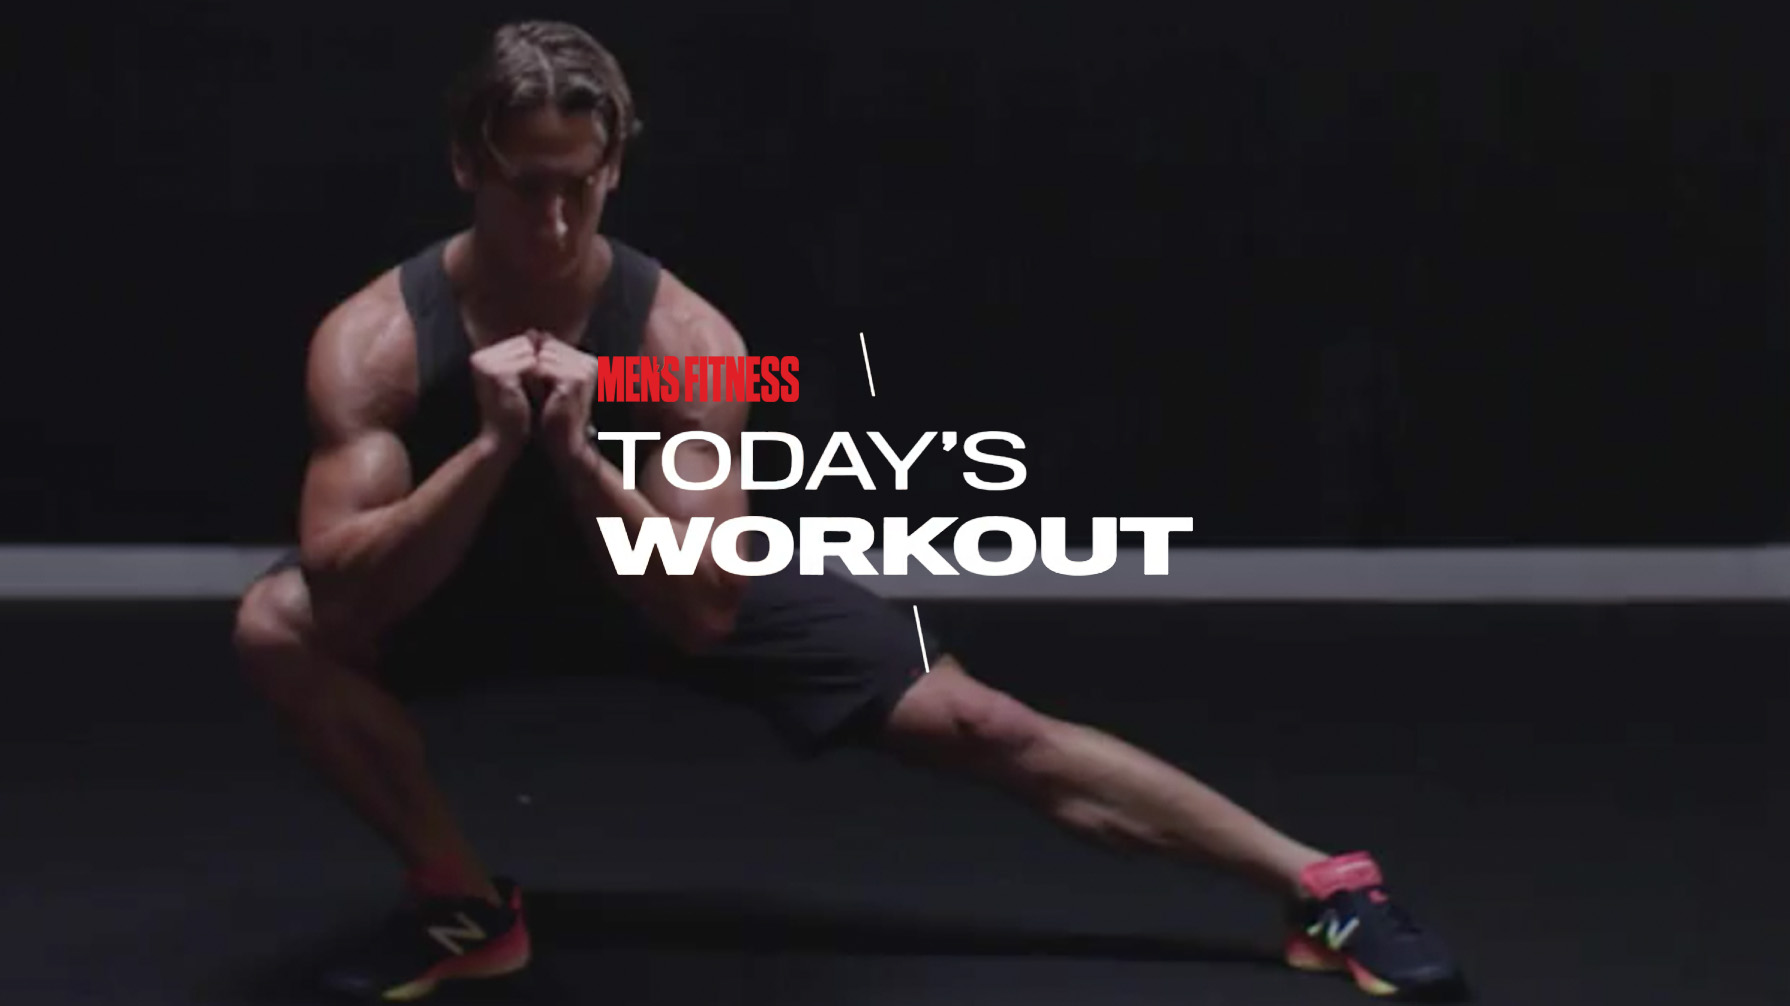 Today's Workout 3: The circuit to torch your lower body